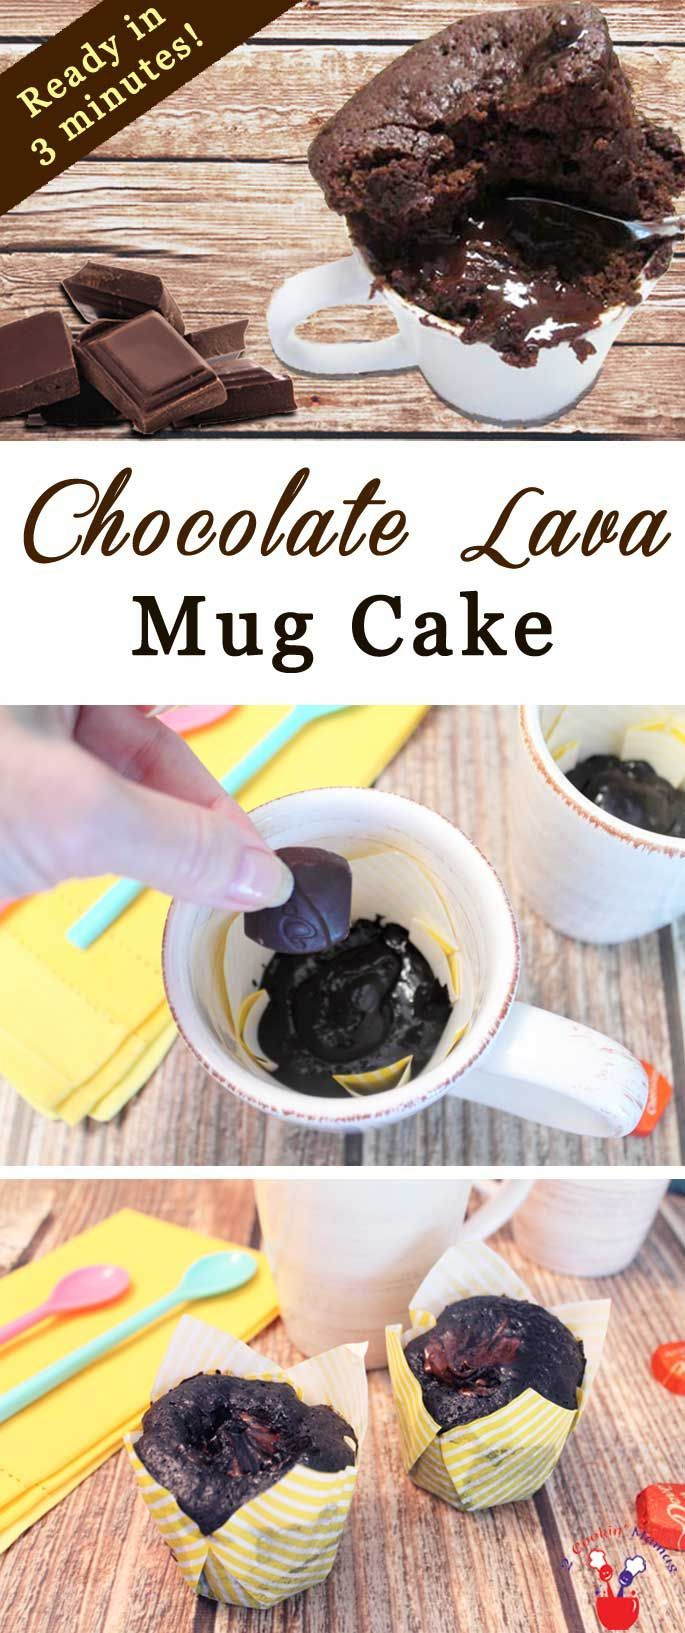 An easy mug cake to make for those that love chocolate! Chocolate cake, a liquid chocolate center, pour in a mug, pop in the microwave, ready in a minute! via @2CookinMamas